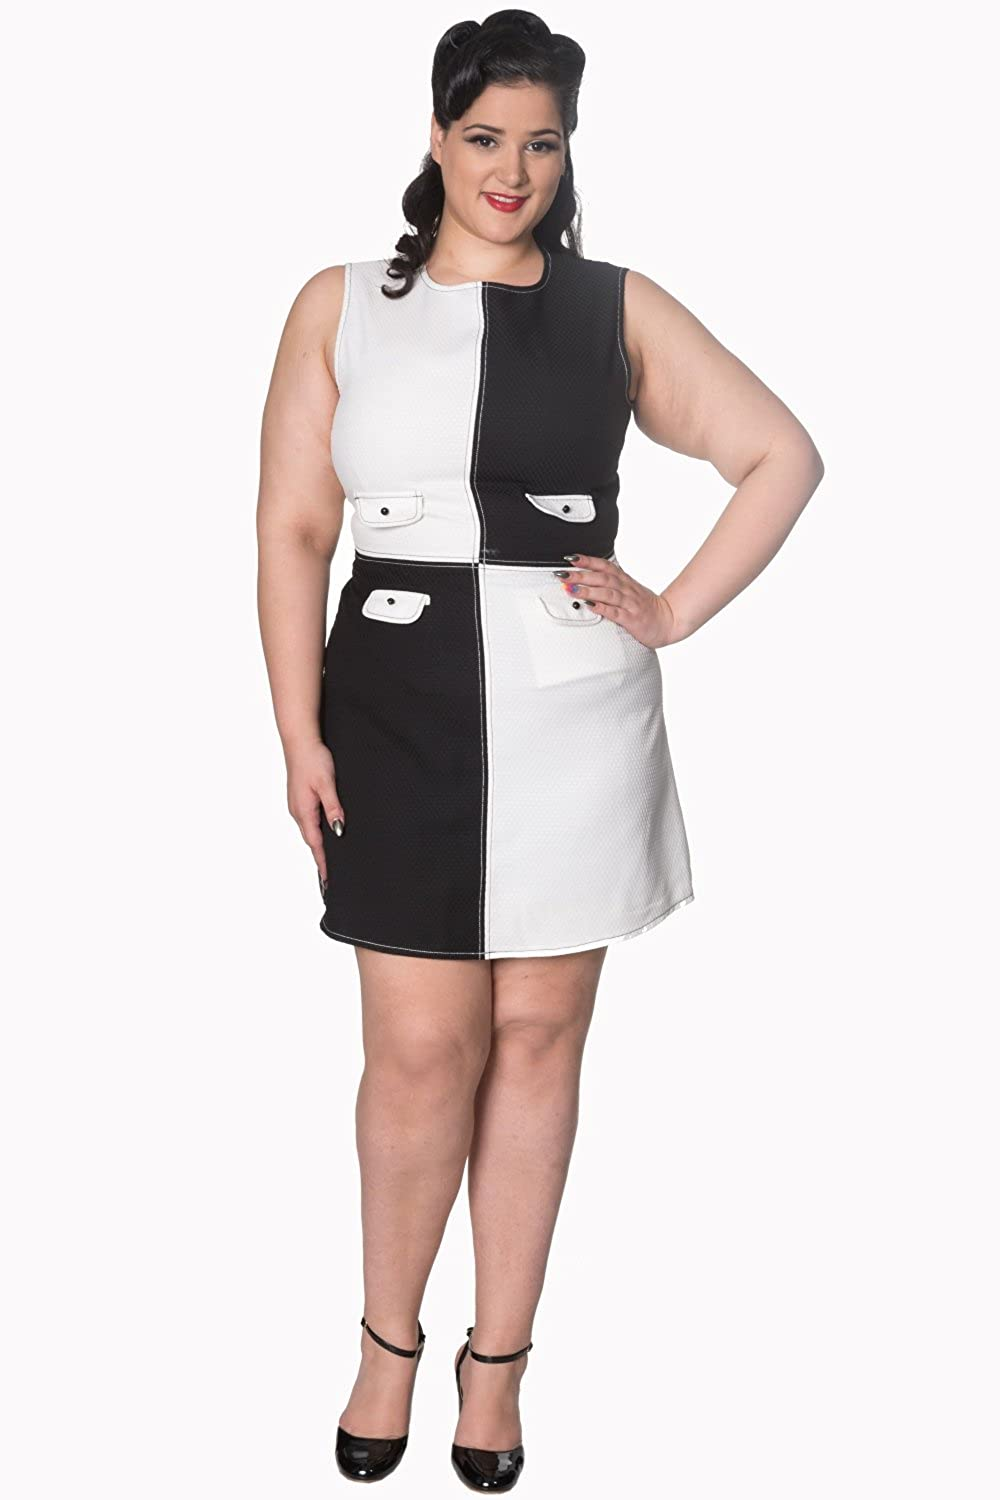 1960s Mad Men Dresses and Clothing Styles Banned Dylan Vintage Retro Plus Size Dress $57.39 AT vintagedancer.com